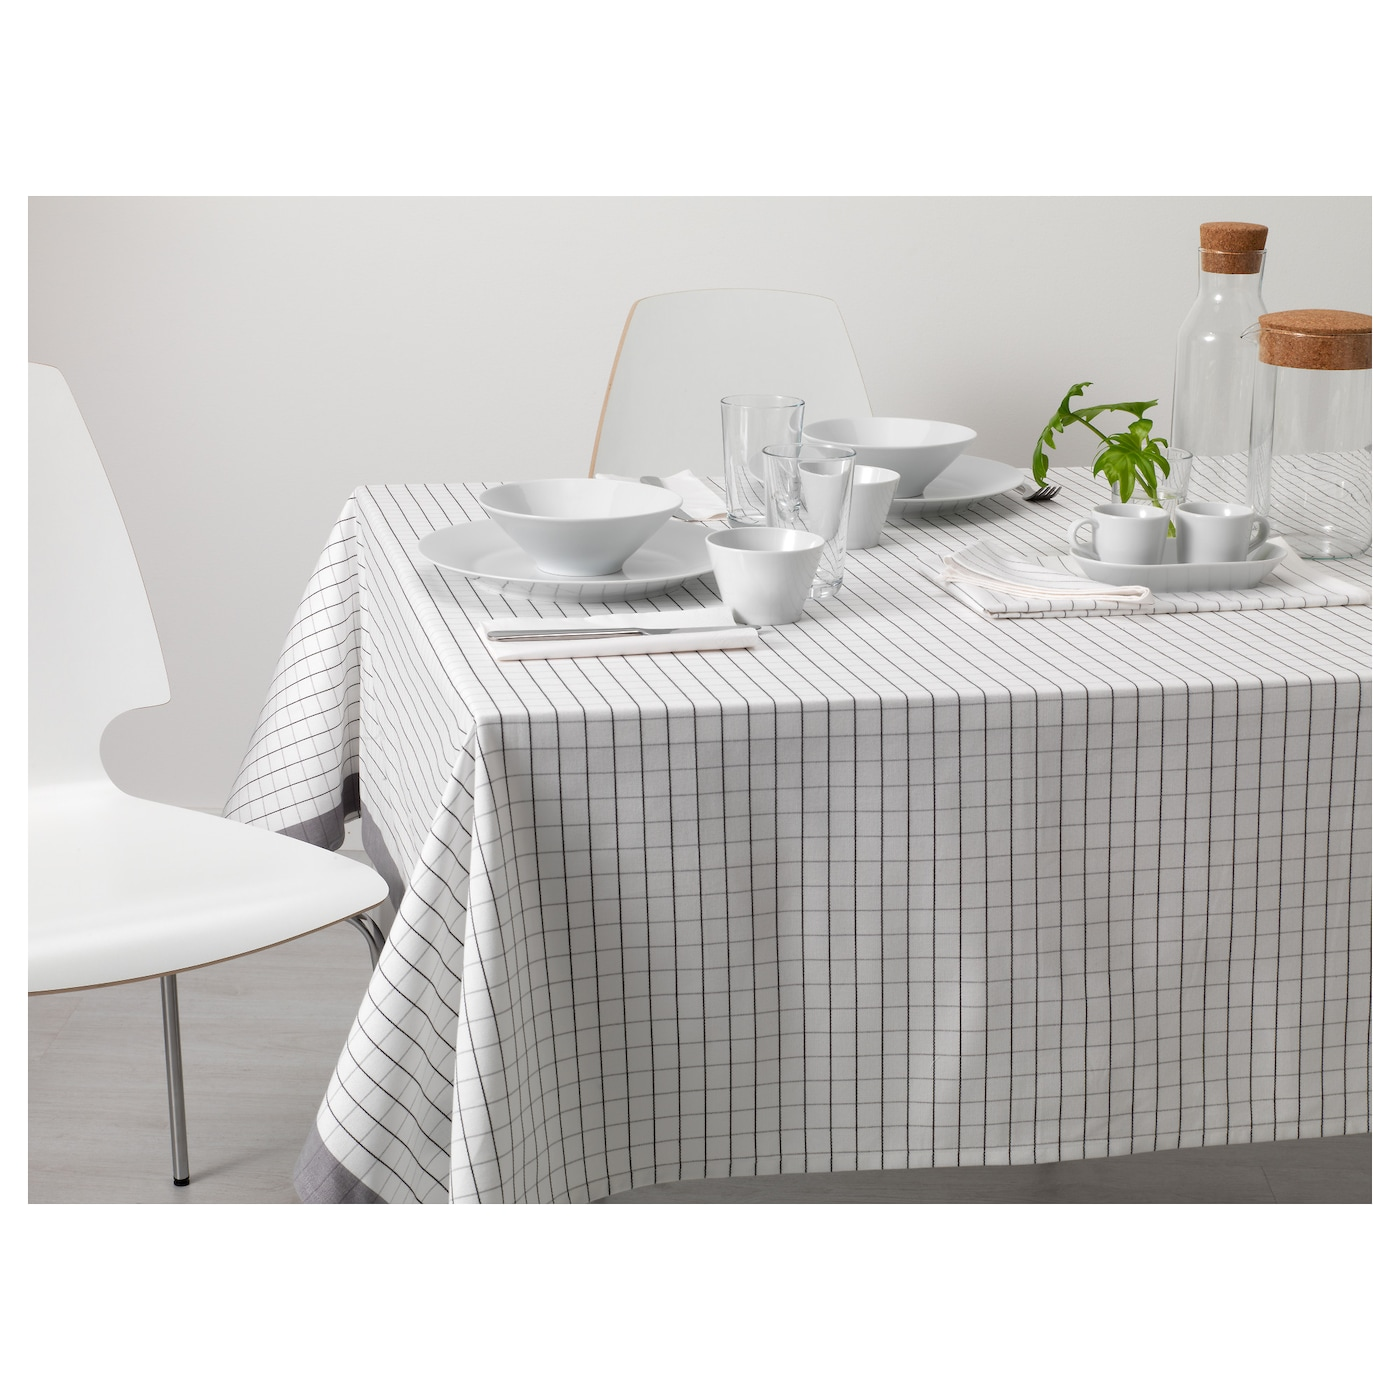 IKEA IKEA 365+ tablecloth Colours are retained wash after wash thanks to the yarn-dyed cotton.